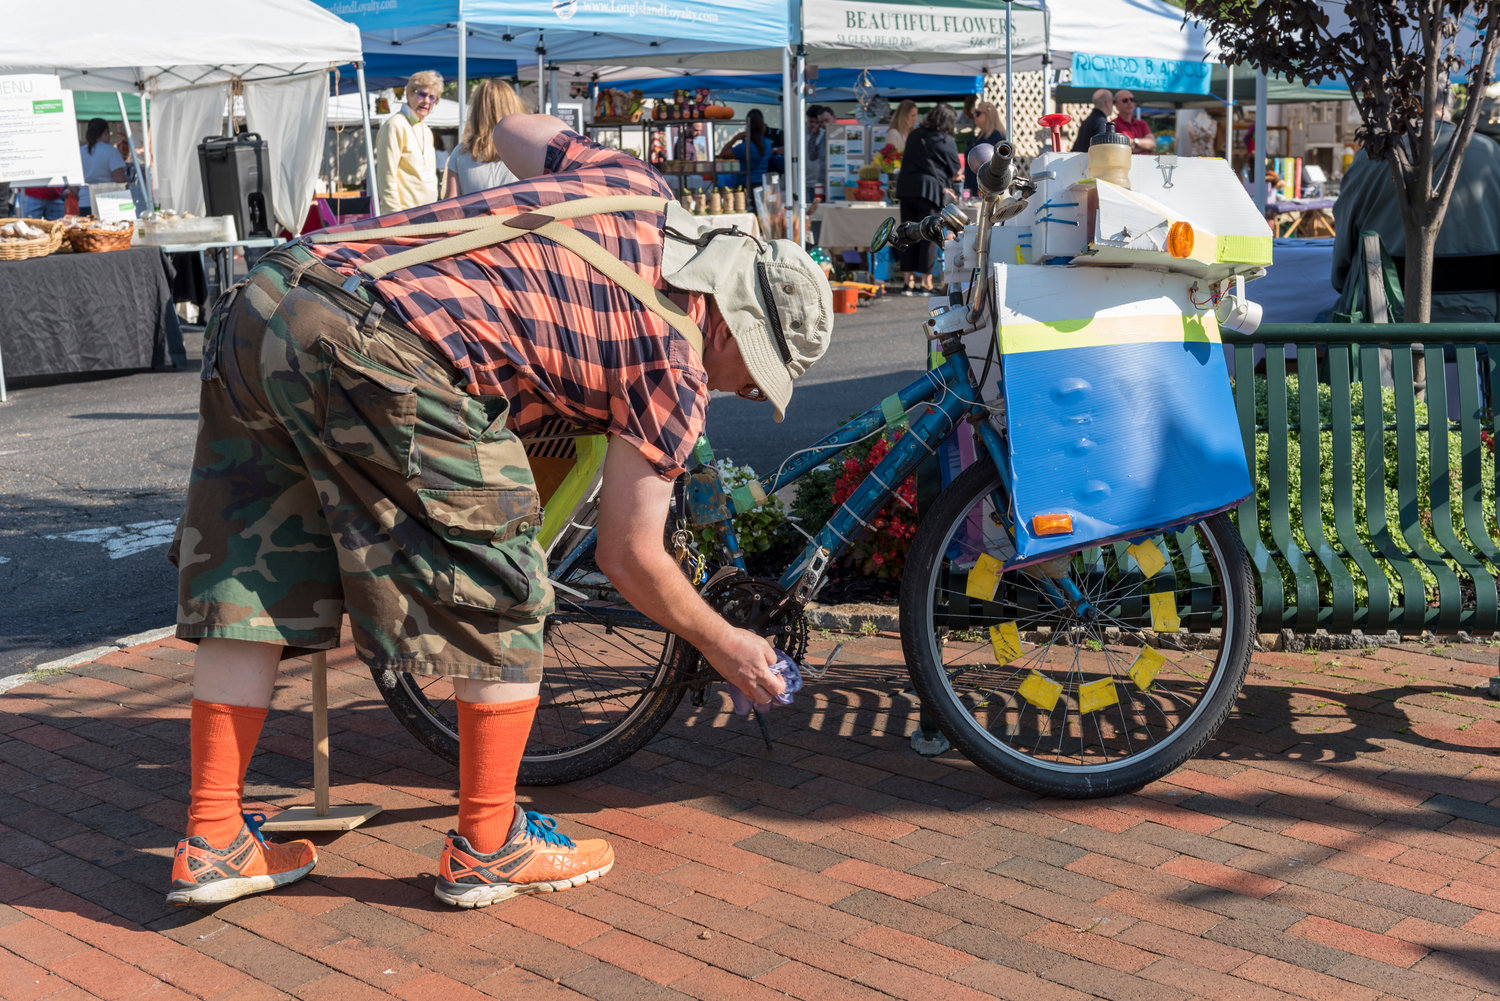 James Donohue adjusted the pedal on his bike after riding over to Fall Fest for the day.